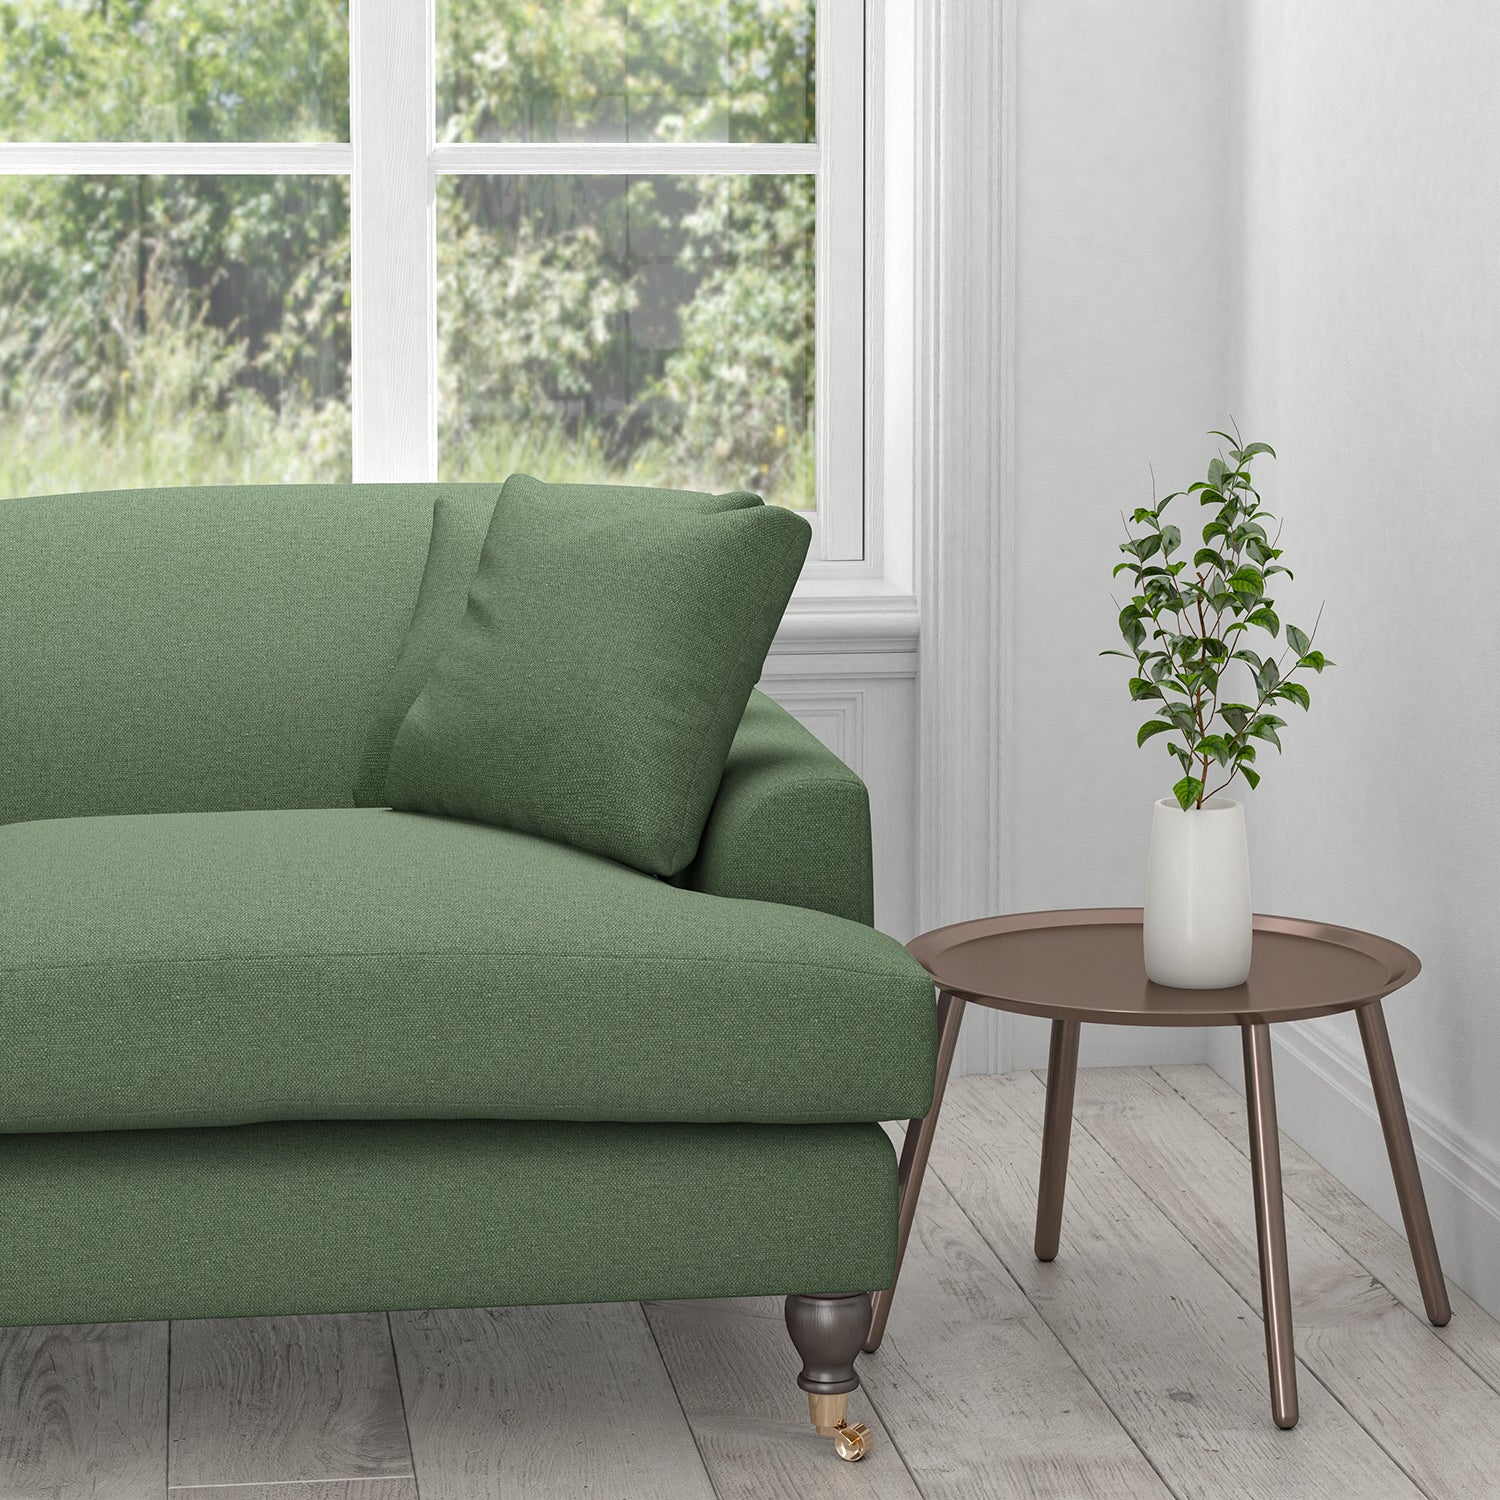 Sofa in a plain cotton sage green upholstery fabric